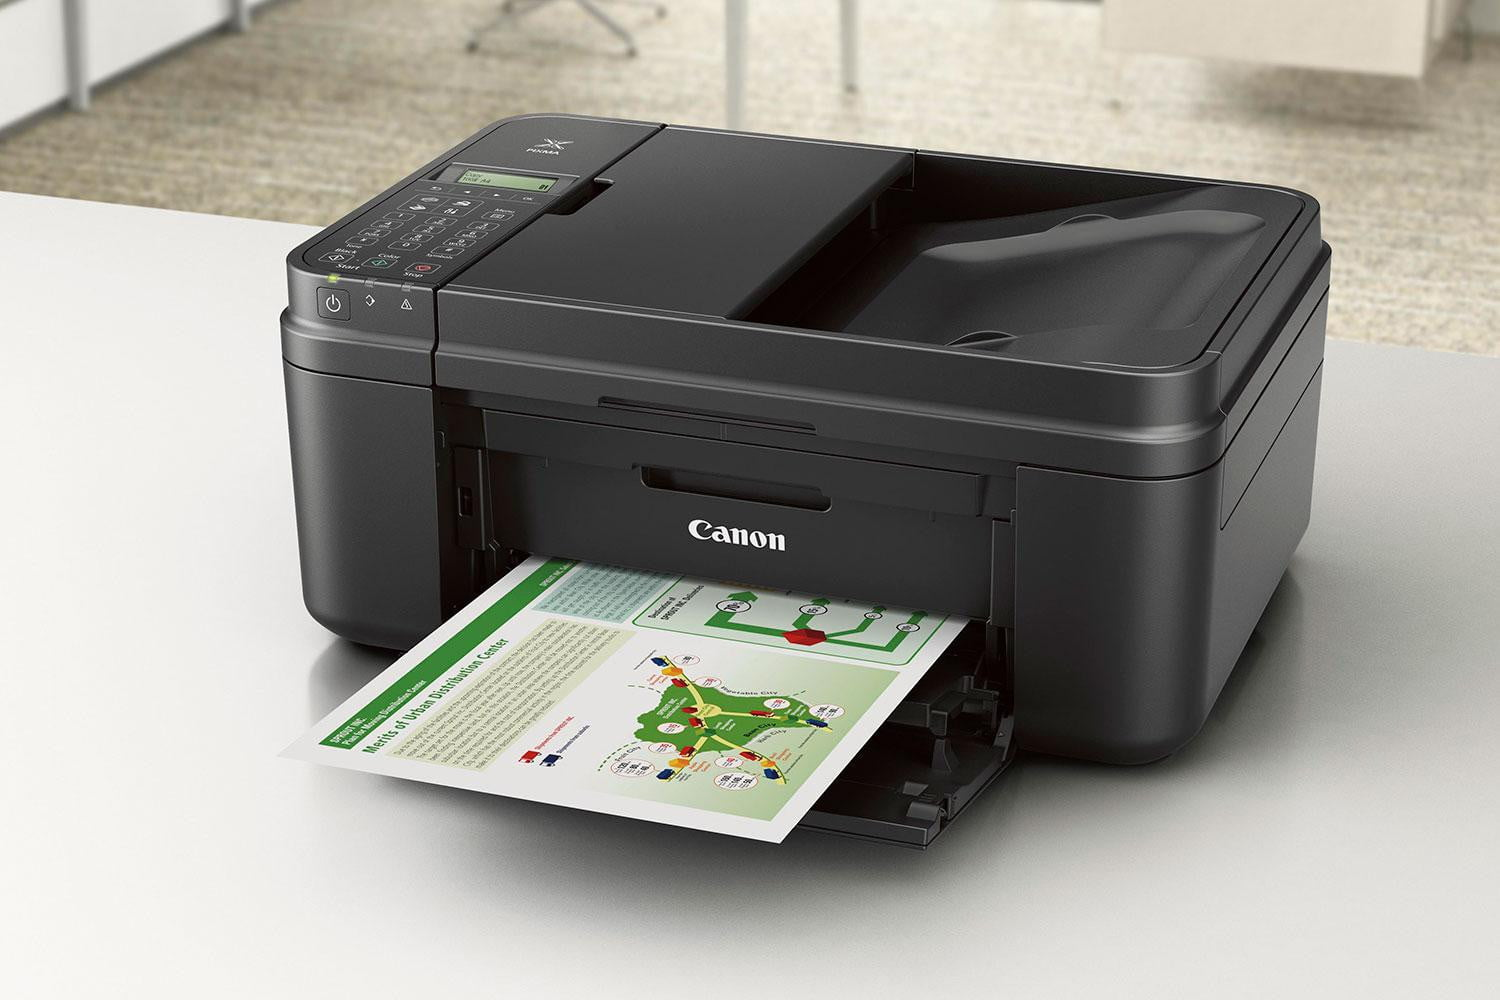 how to connect canon printer to wifi without cd